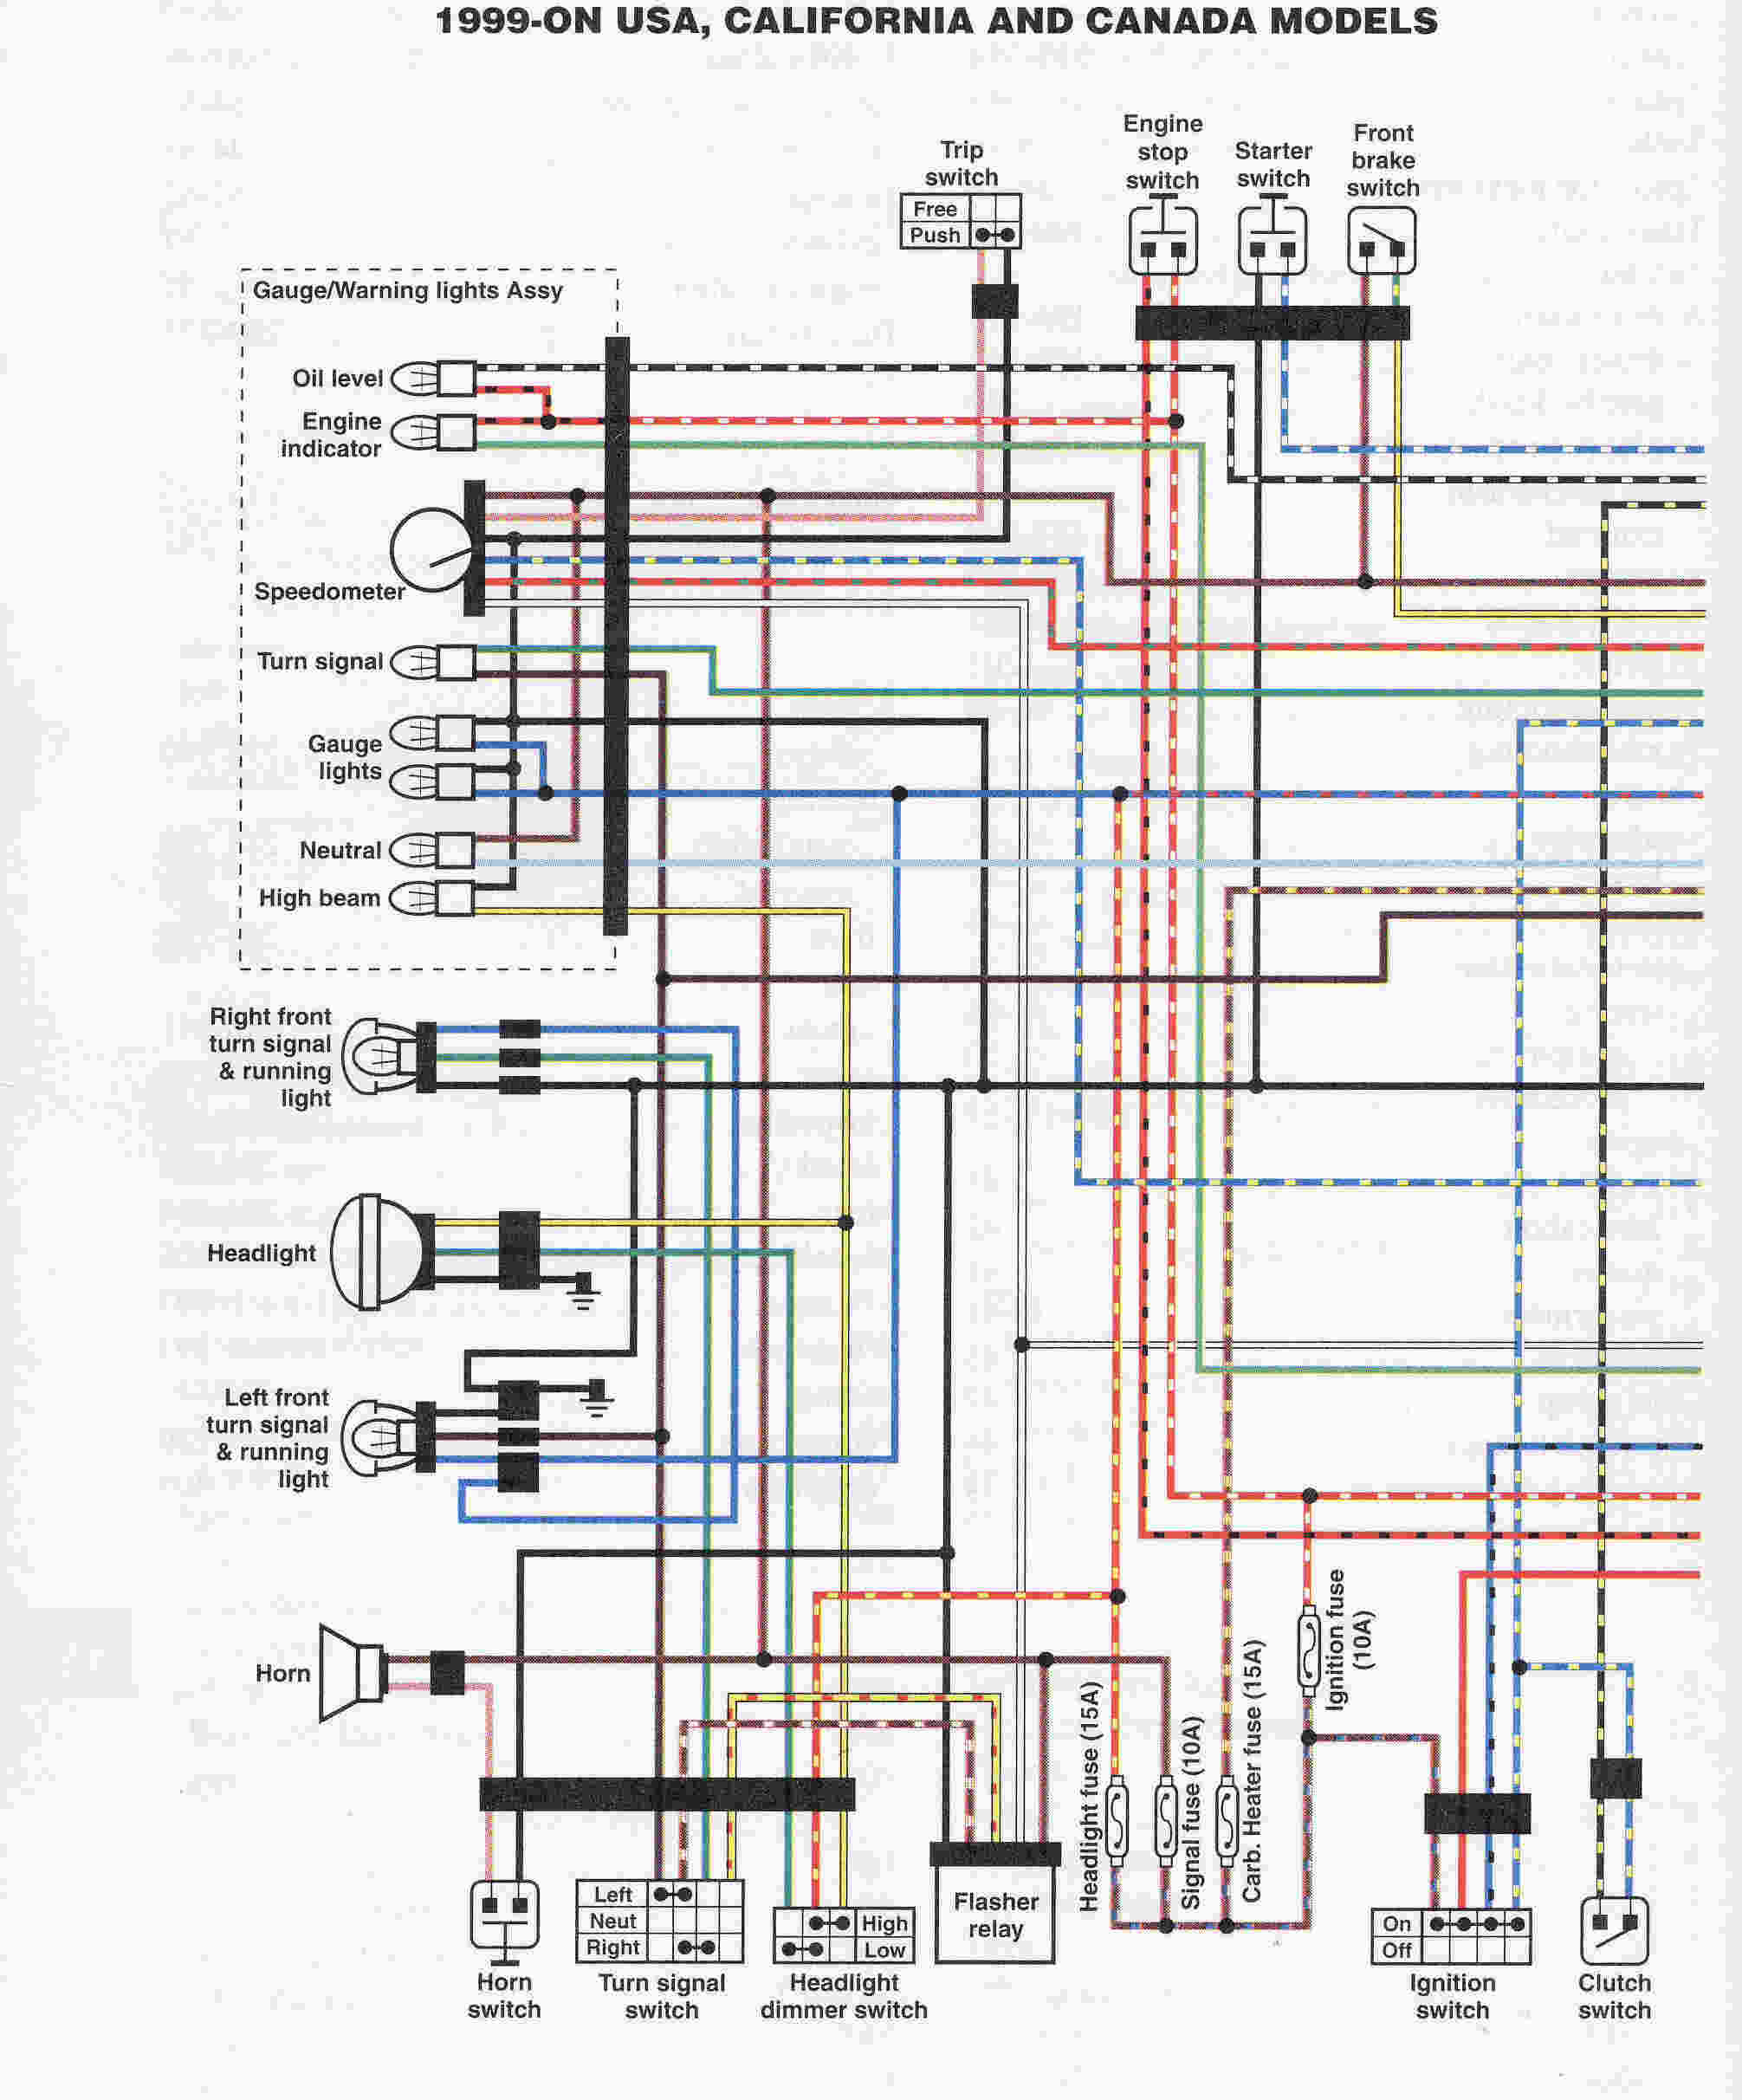 Wiring US 01 radio wiring diagrams yamaha wiring diagrams instruction 2004 Yamaha R6 Wiring-Diagram at eliteediting.co